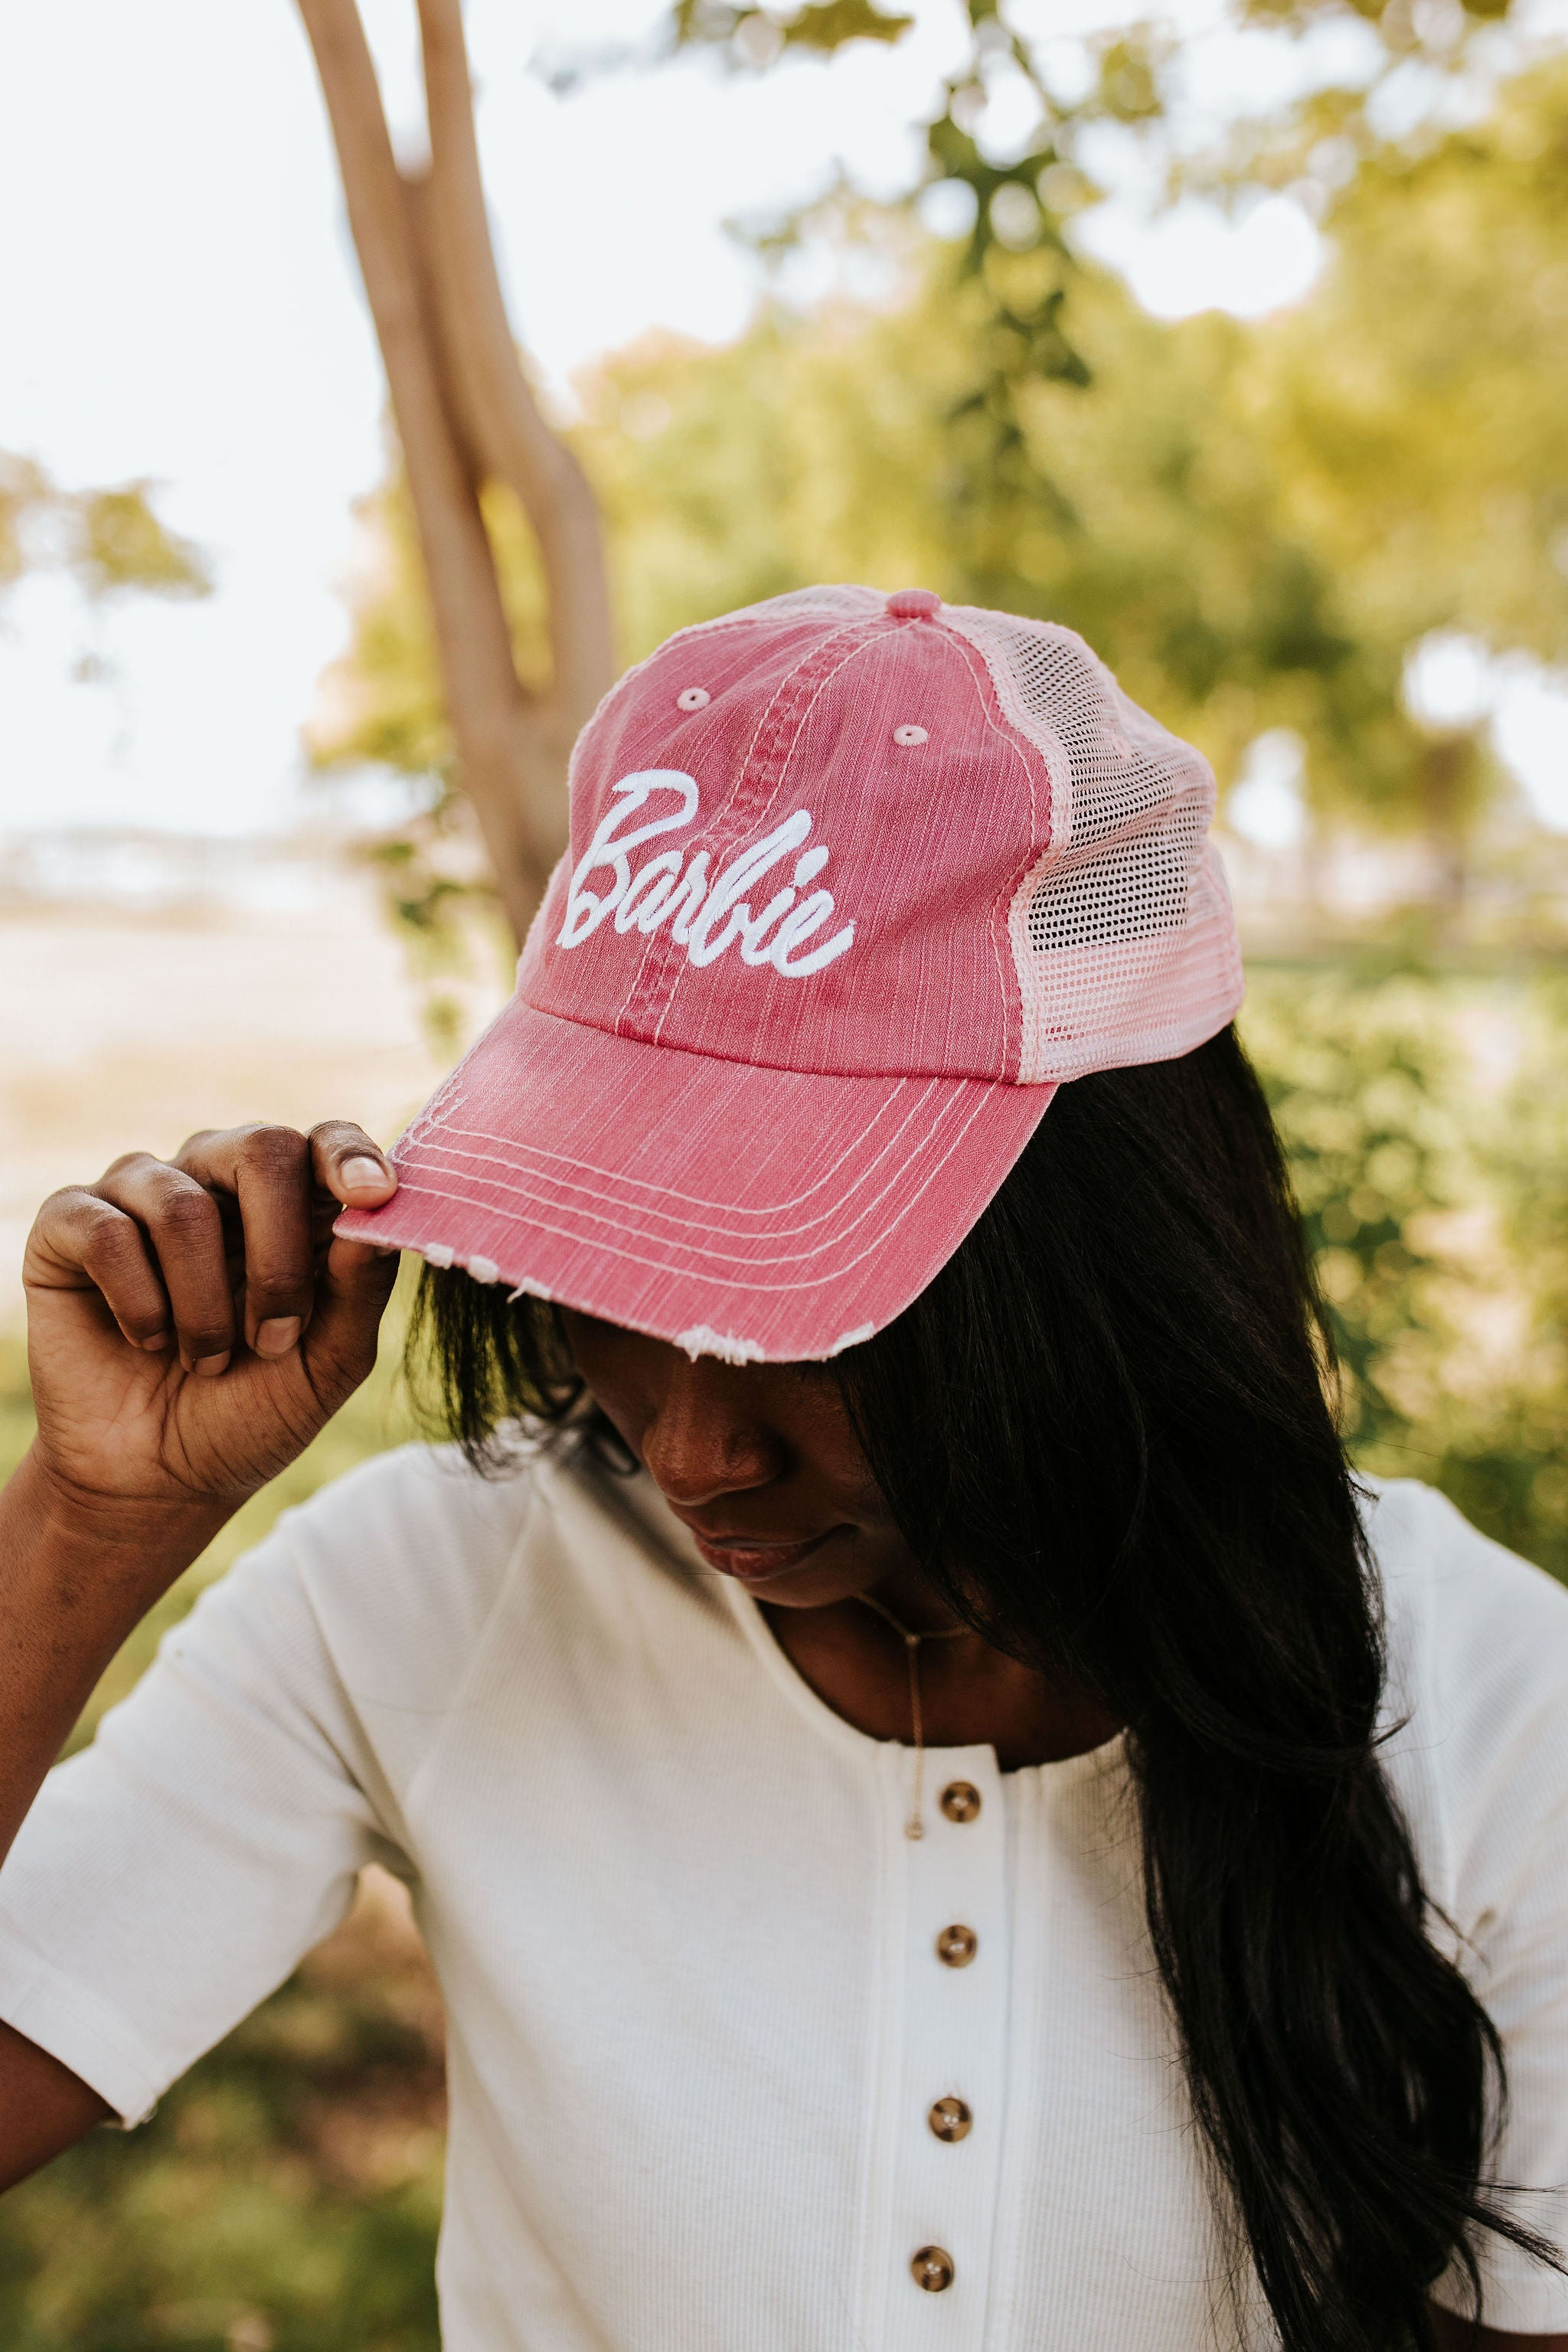 THE BARBIE TRUCKER HAT IN PINK